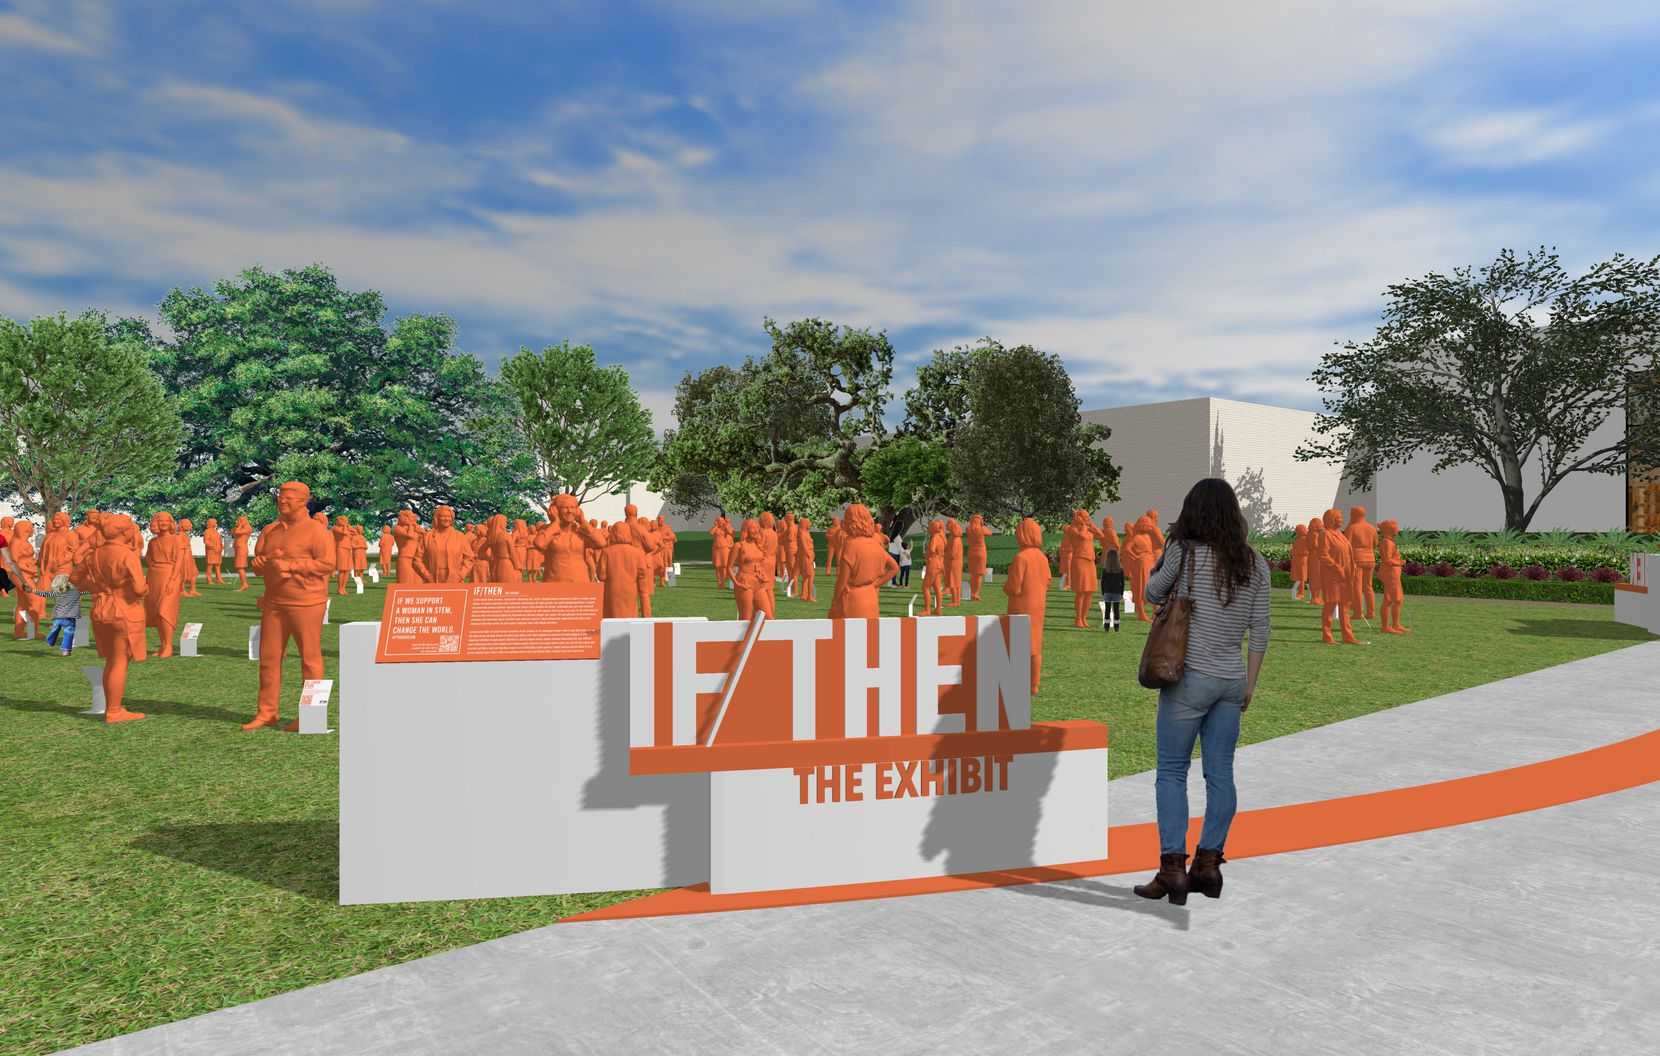 Statues of women are depicted in a rendering of a planned May 1 exhibition at NorthPark Center from the If/Then Initiative. It will be the largest collection of statues of women ever assembled in one location at one time, according to the organizers of the project.